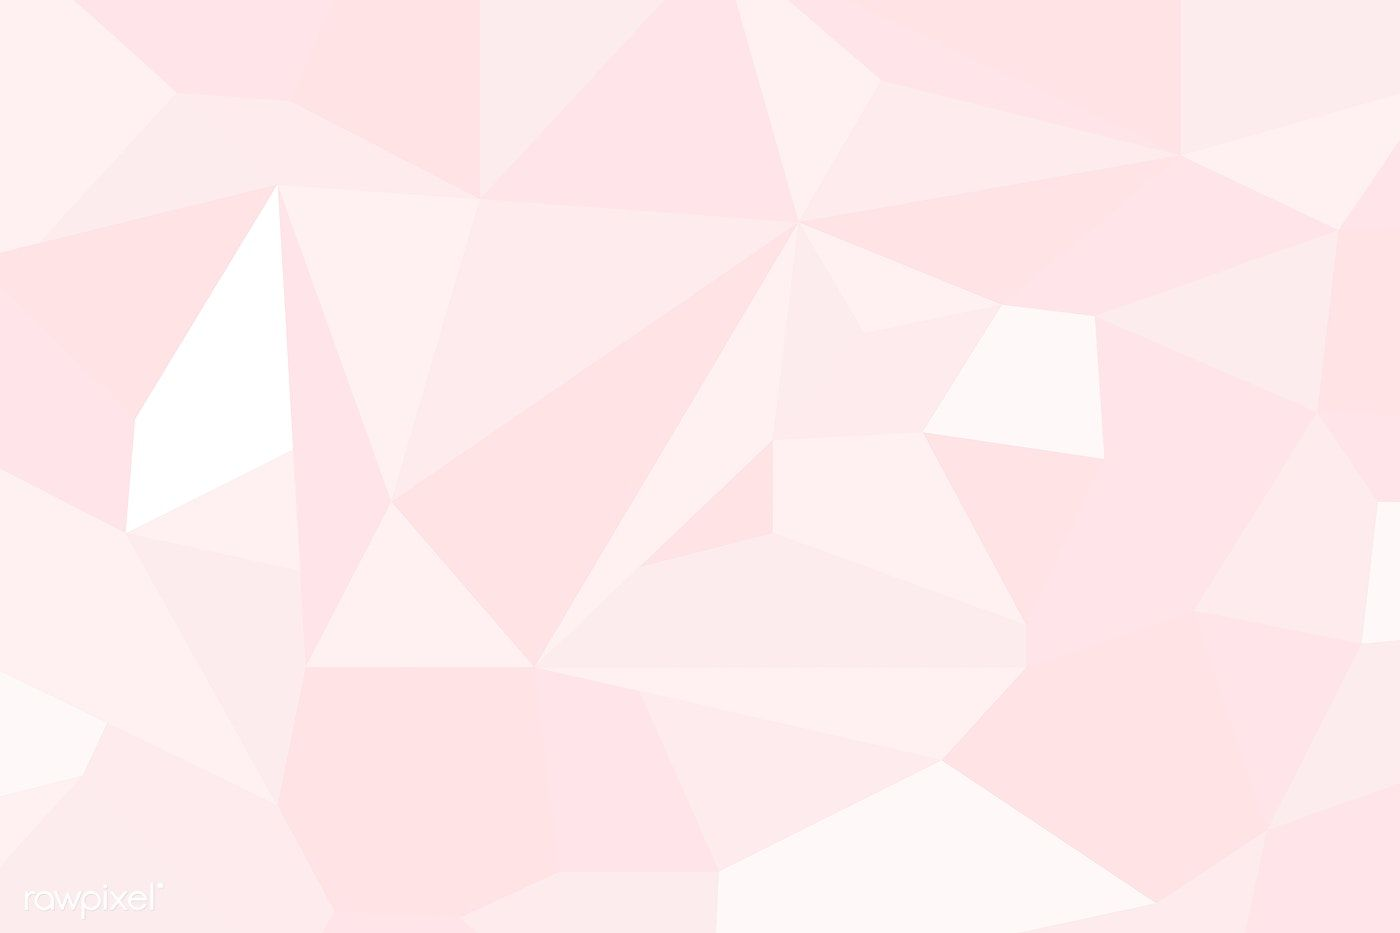 Light Pink Geometric Background Design Element Free Image By Rawpixel Com Katie In 2021 Geometric Background Background Design Powerpoint Background Design